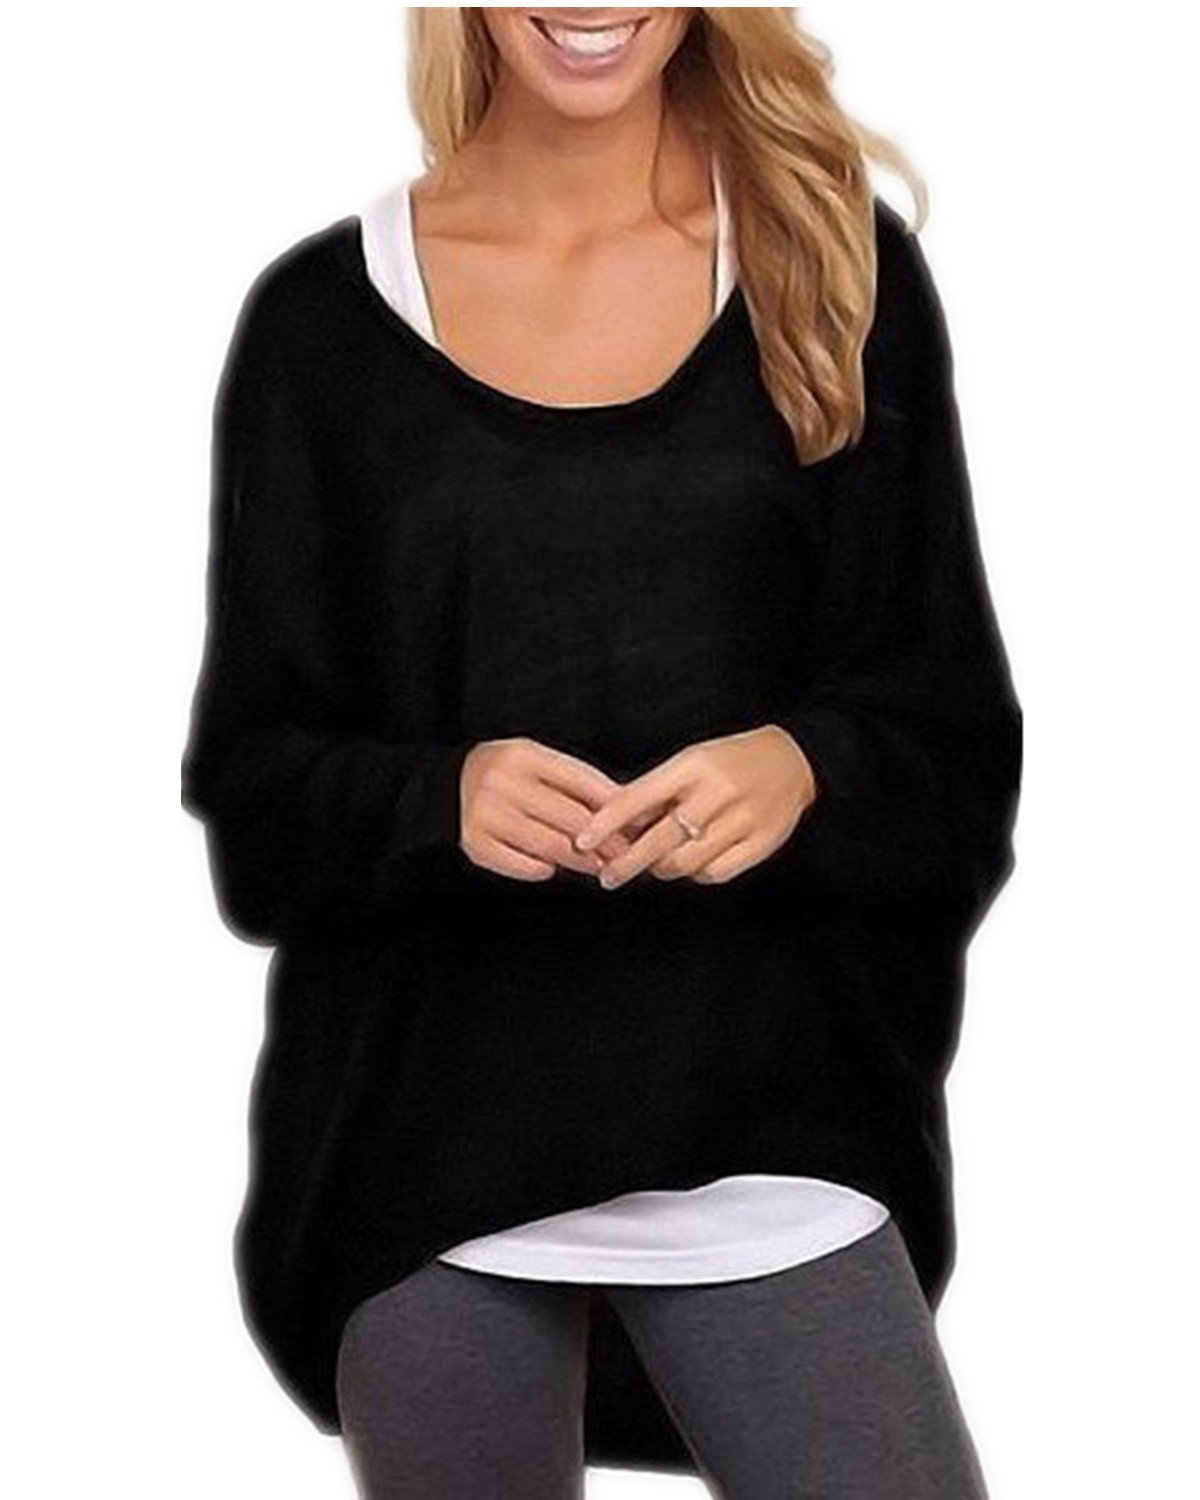 ZANZEA Women's Long Batwing Sleeve Loose Oversize Pullover Sweater Top Blouse Black US 8/Tag Size M